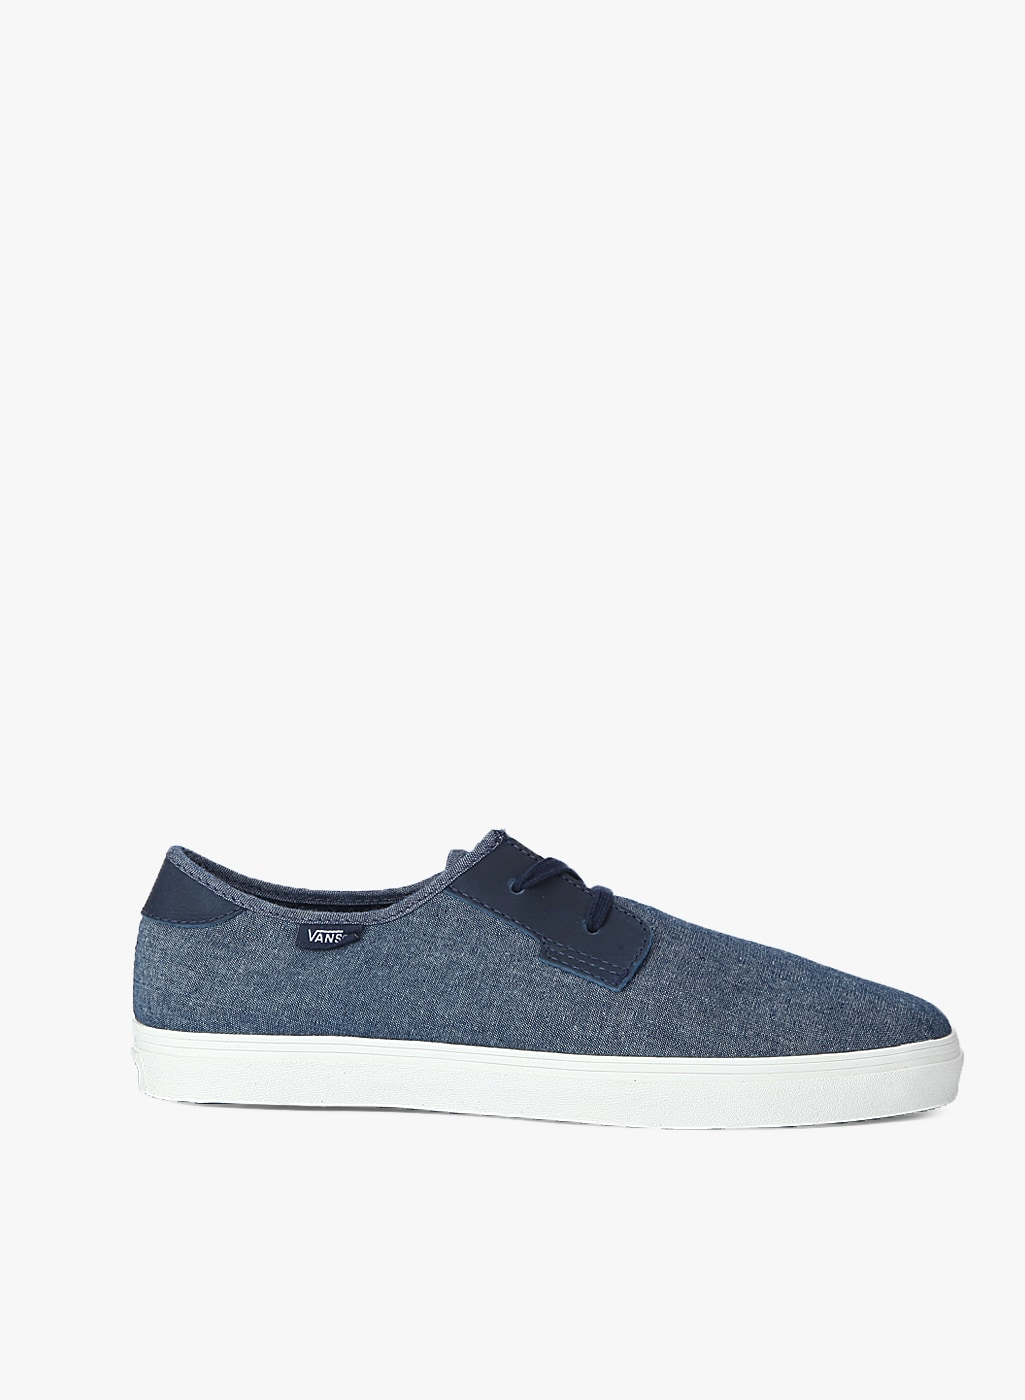 0622d06b1706bd Vans - Buy Vans Online in India - Jabong